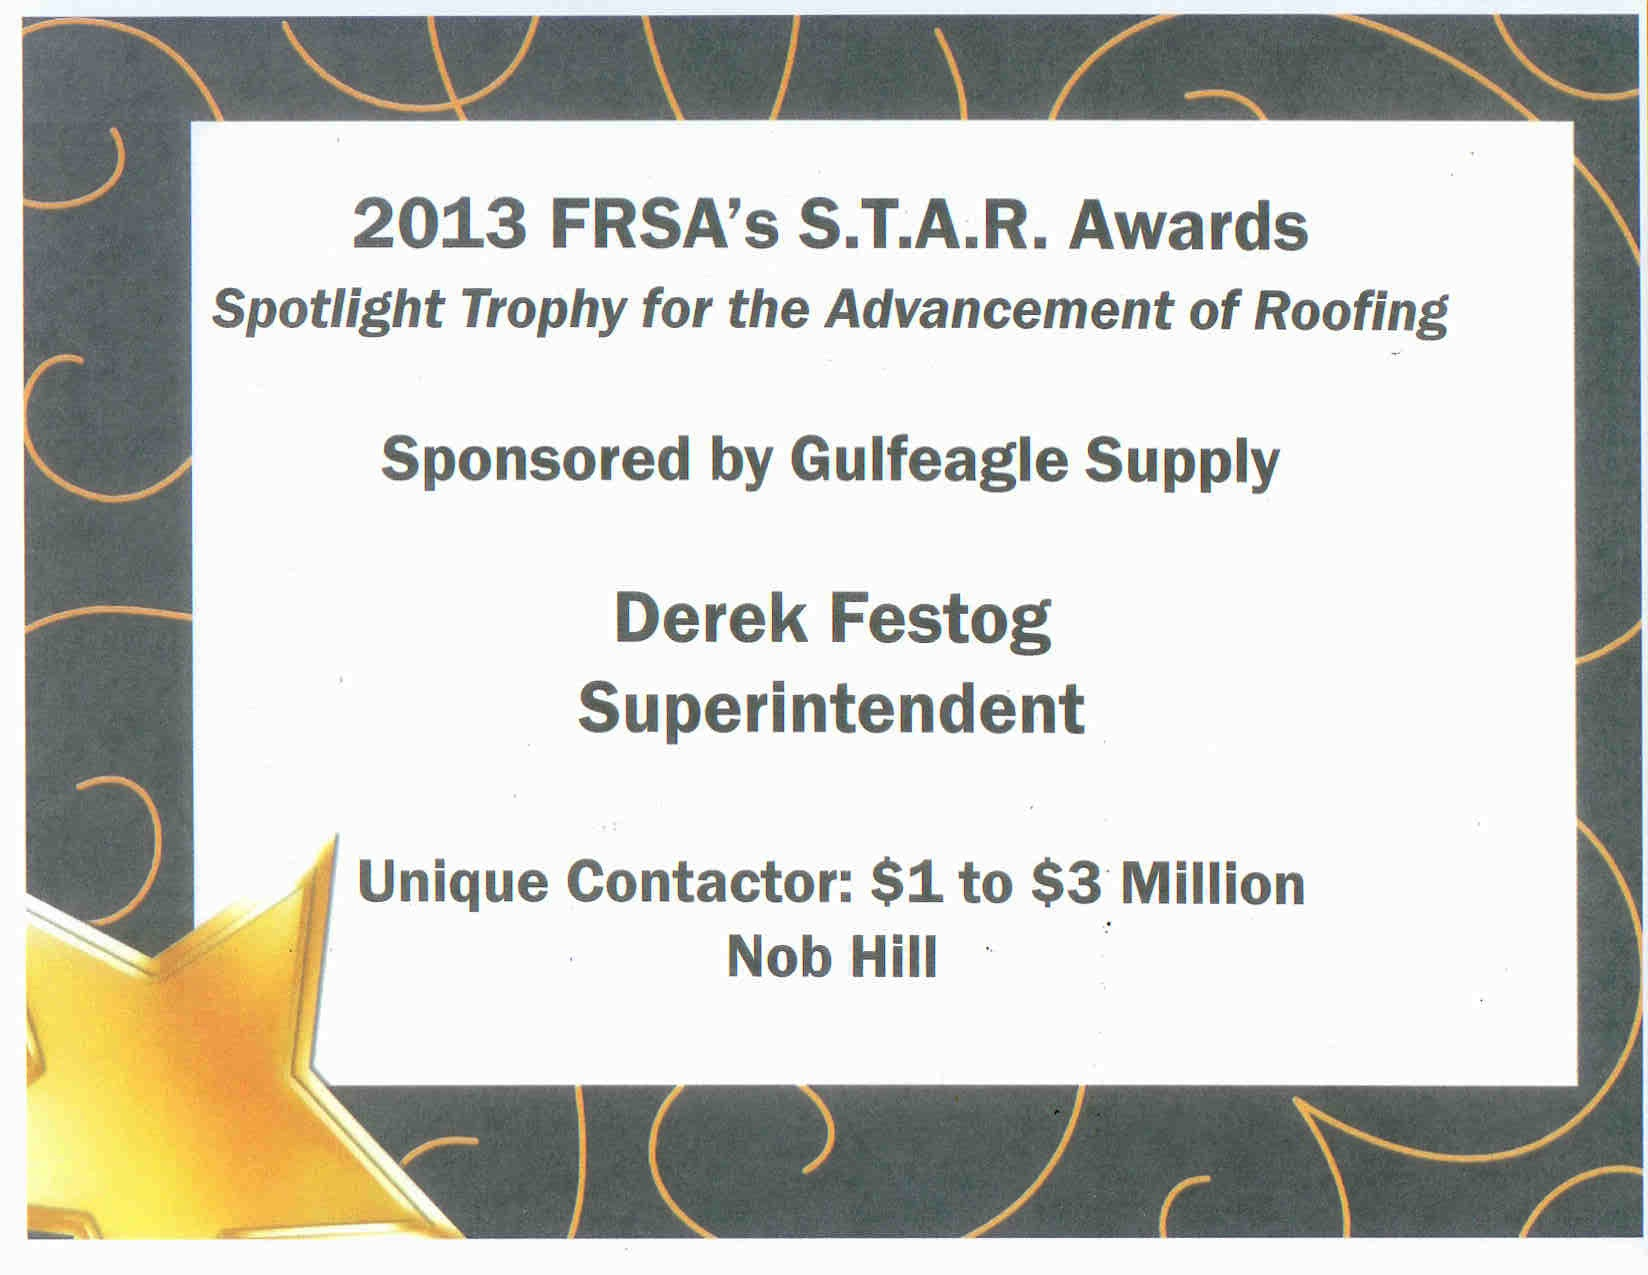 2013 FRSA\'s S.T.A.R. Spotlight Trophy for the Advancment of Roofing